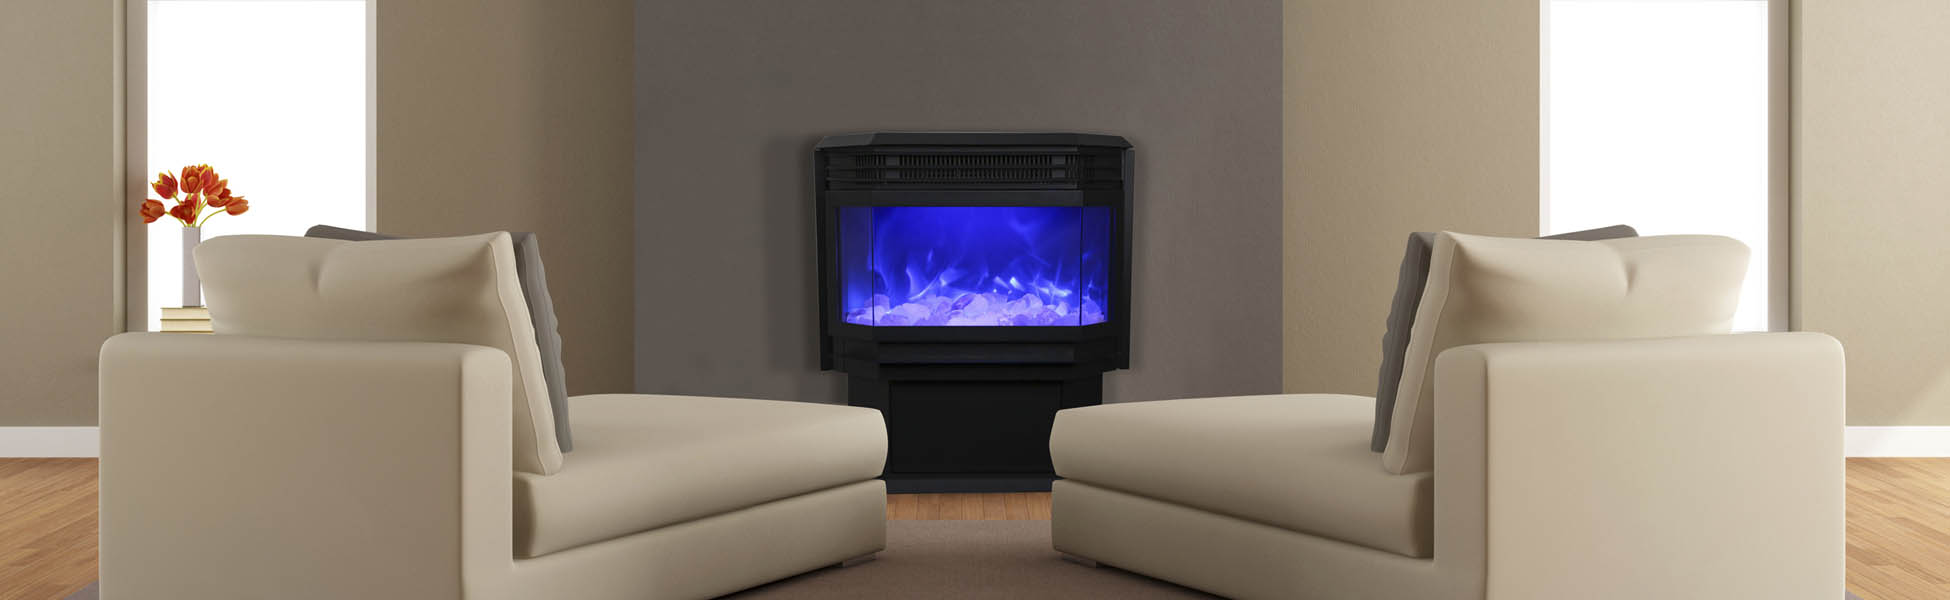 Free Stand electric fireplace by Sierra Flame